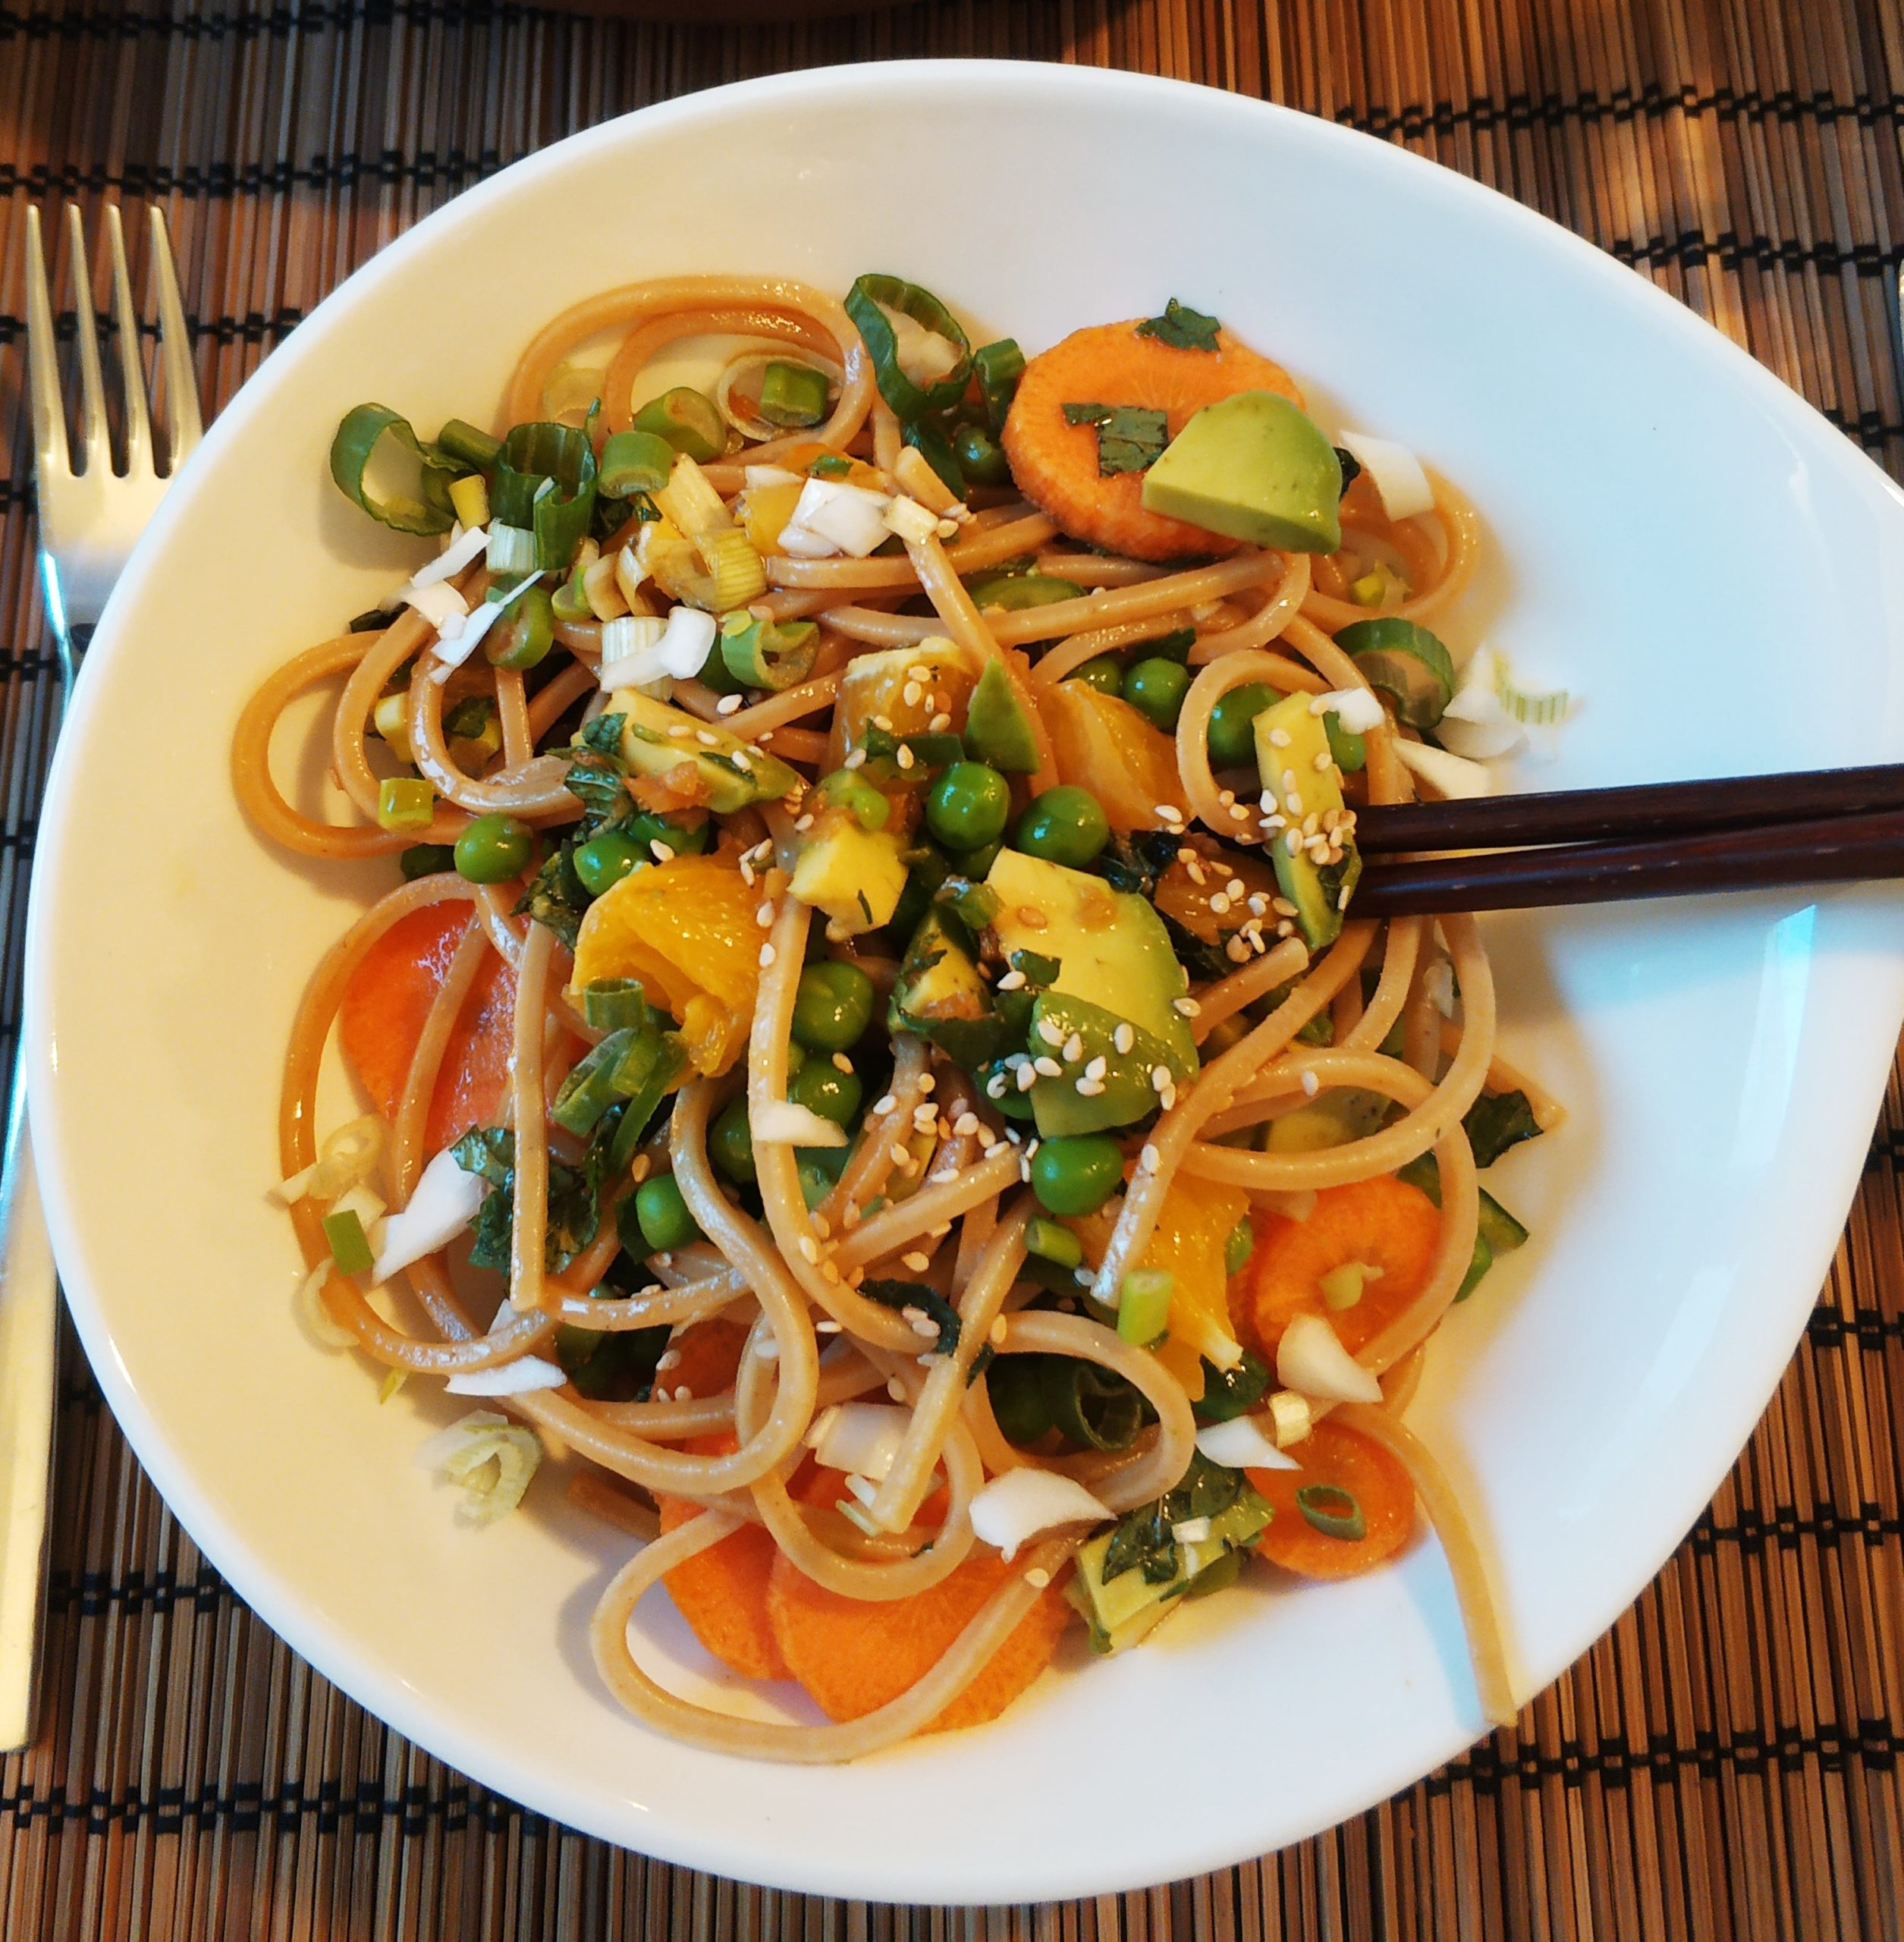 Asian Noodle Salad with Ginger dressing, Mint, Green Peas and Orange